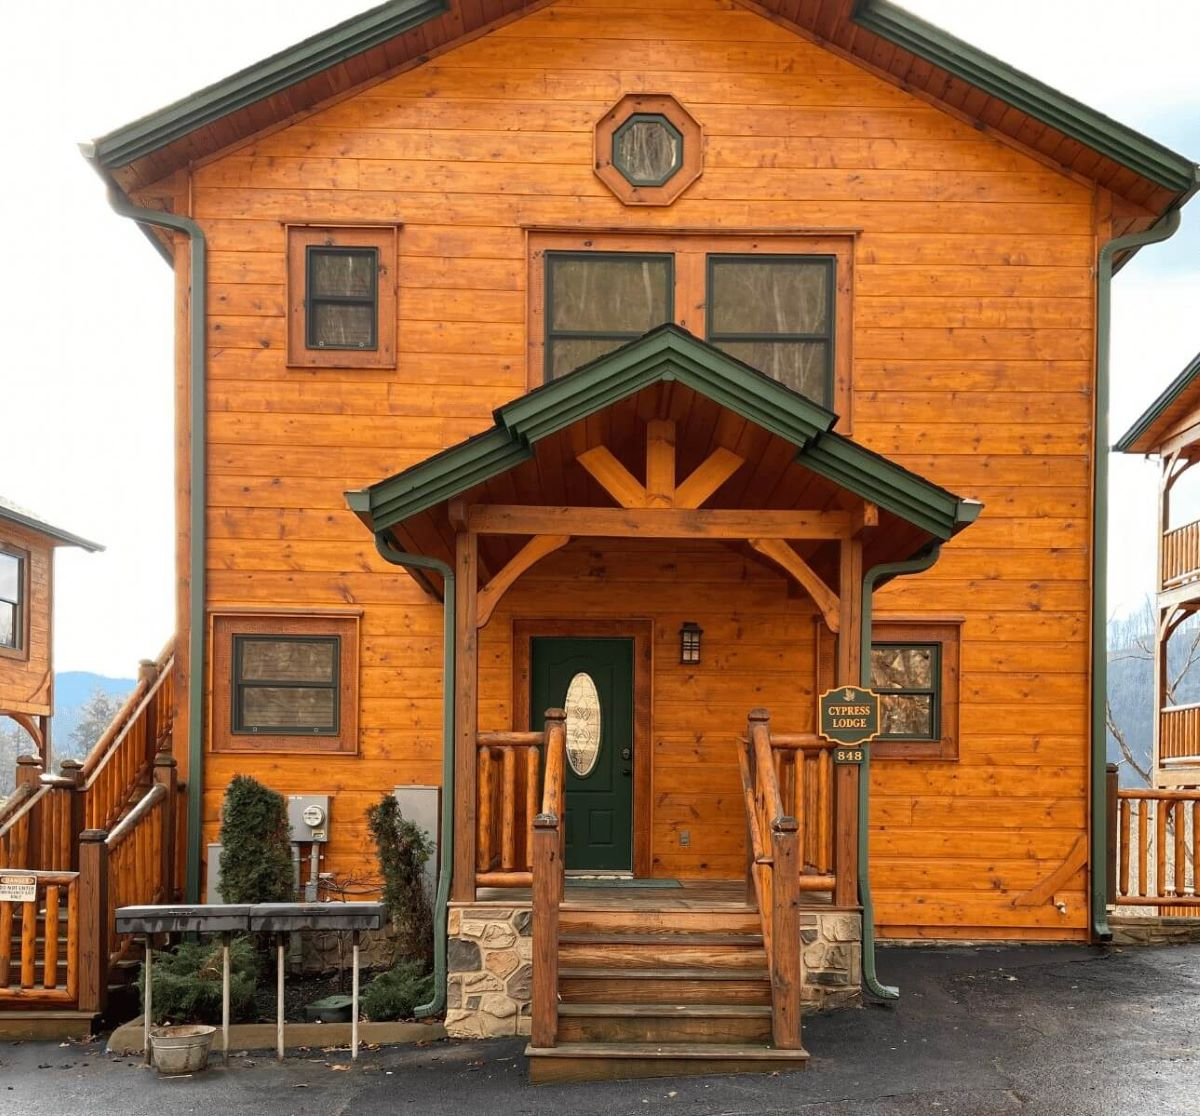 Exterior view of the front of Cypress Lodge in Gatlinburg Falls Resort